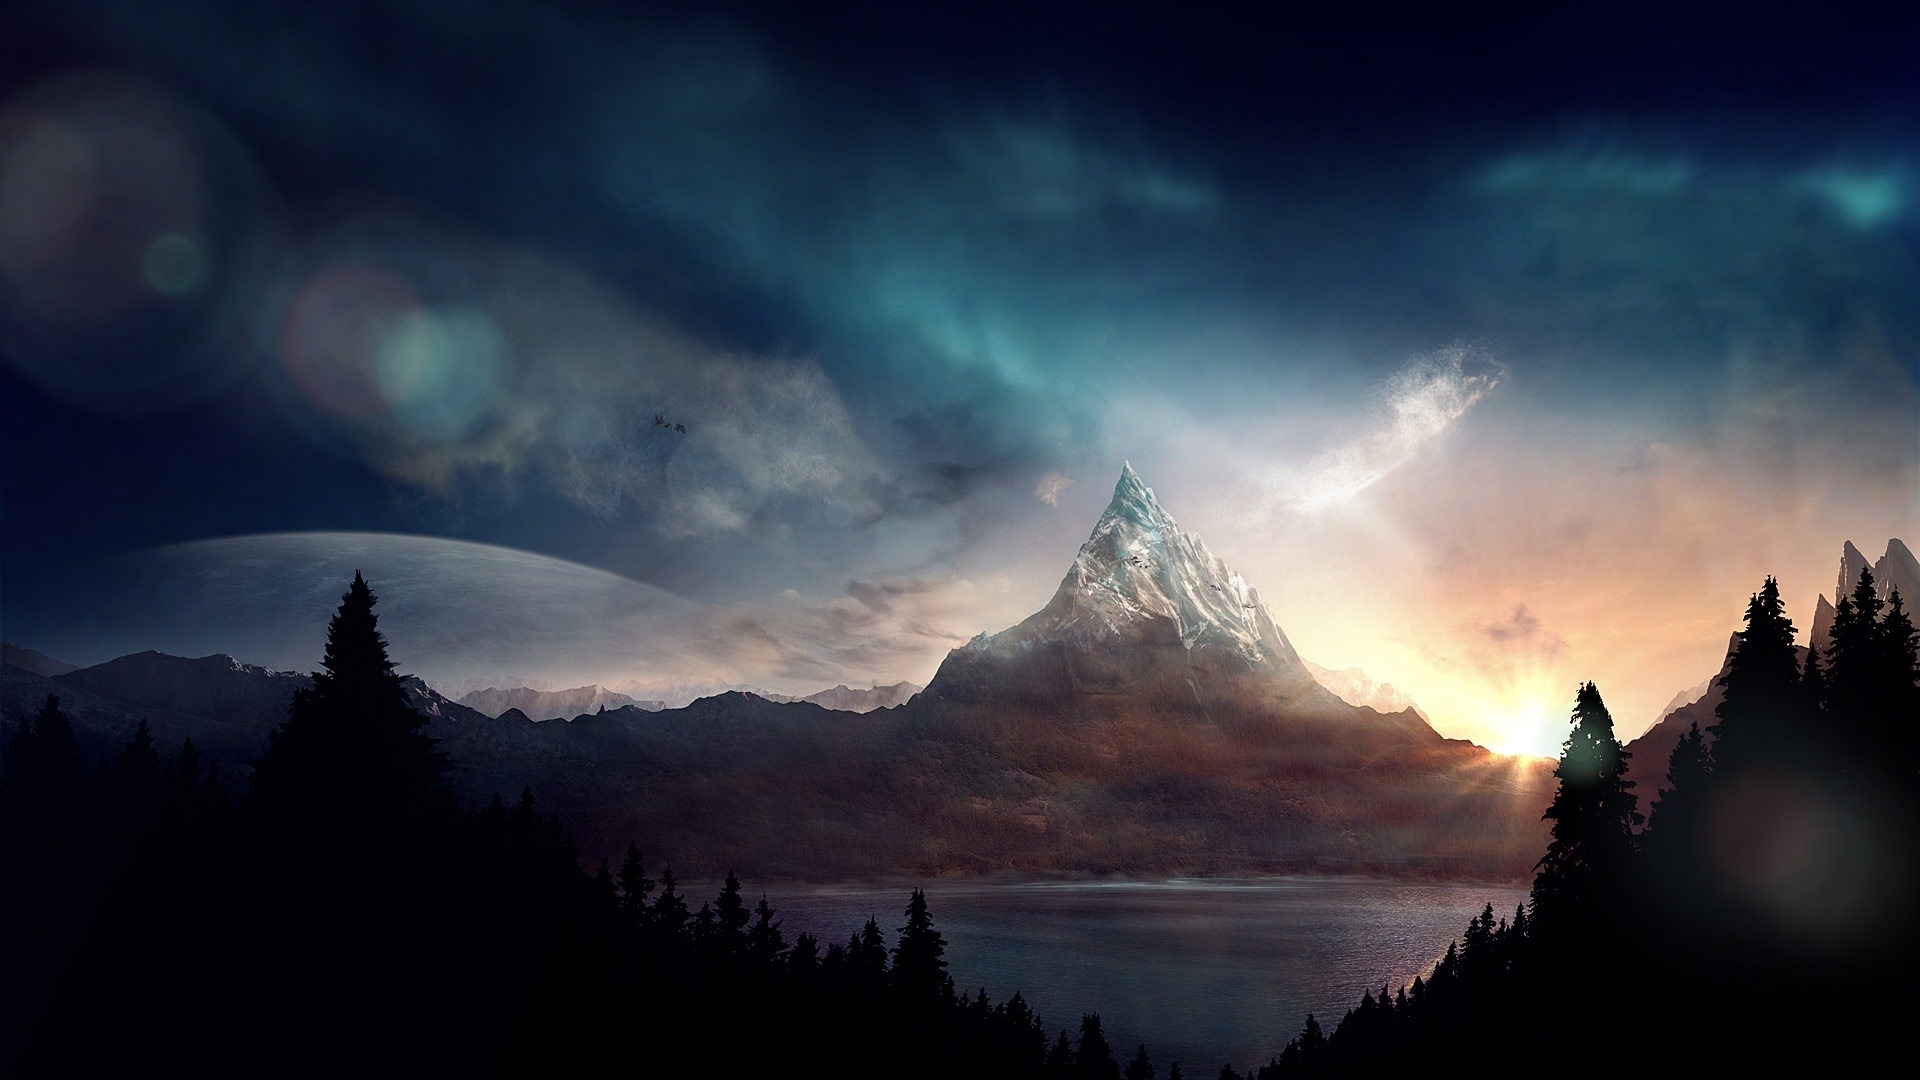 Mountain Peaks Fantasy Wallpaper